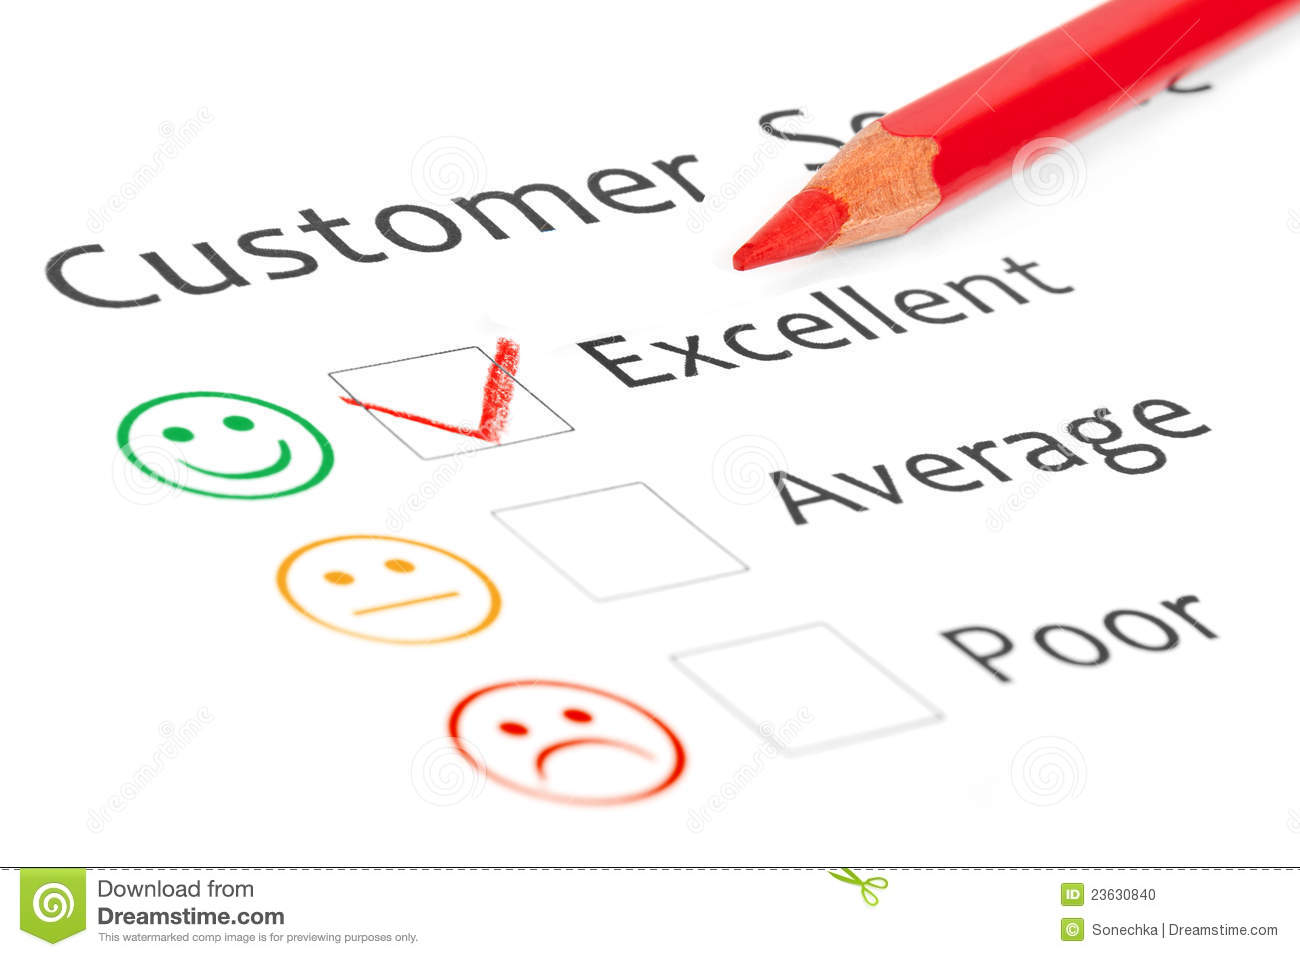 Tick placed in excellent checkbox on customer serv